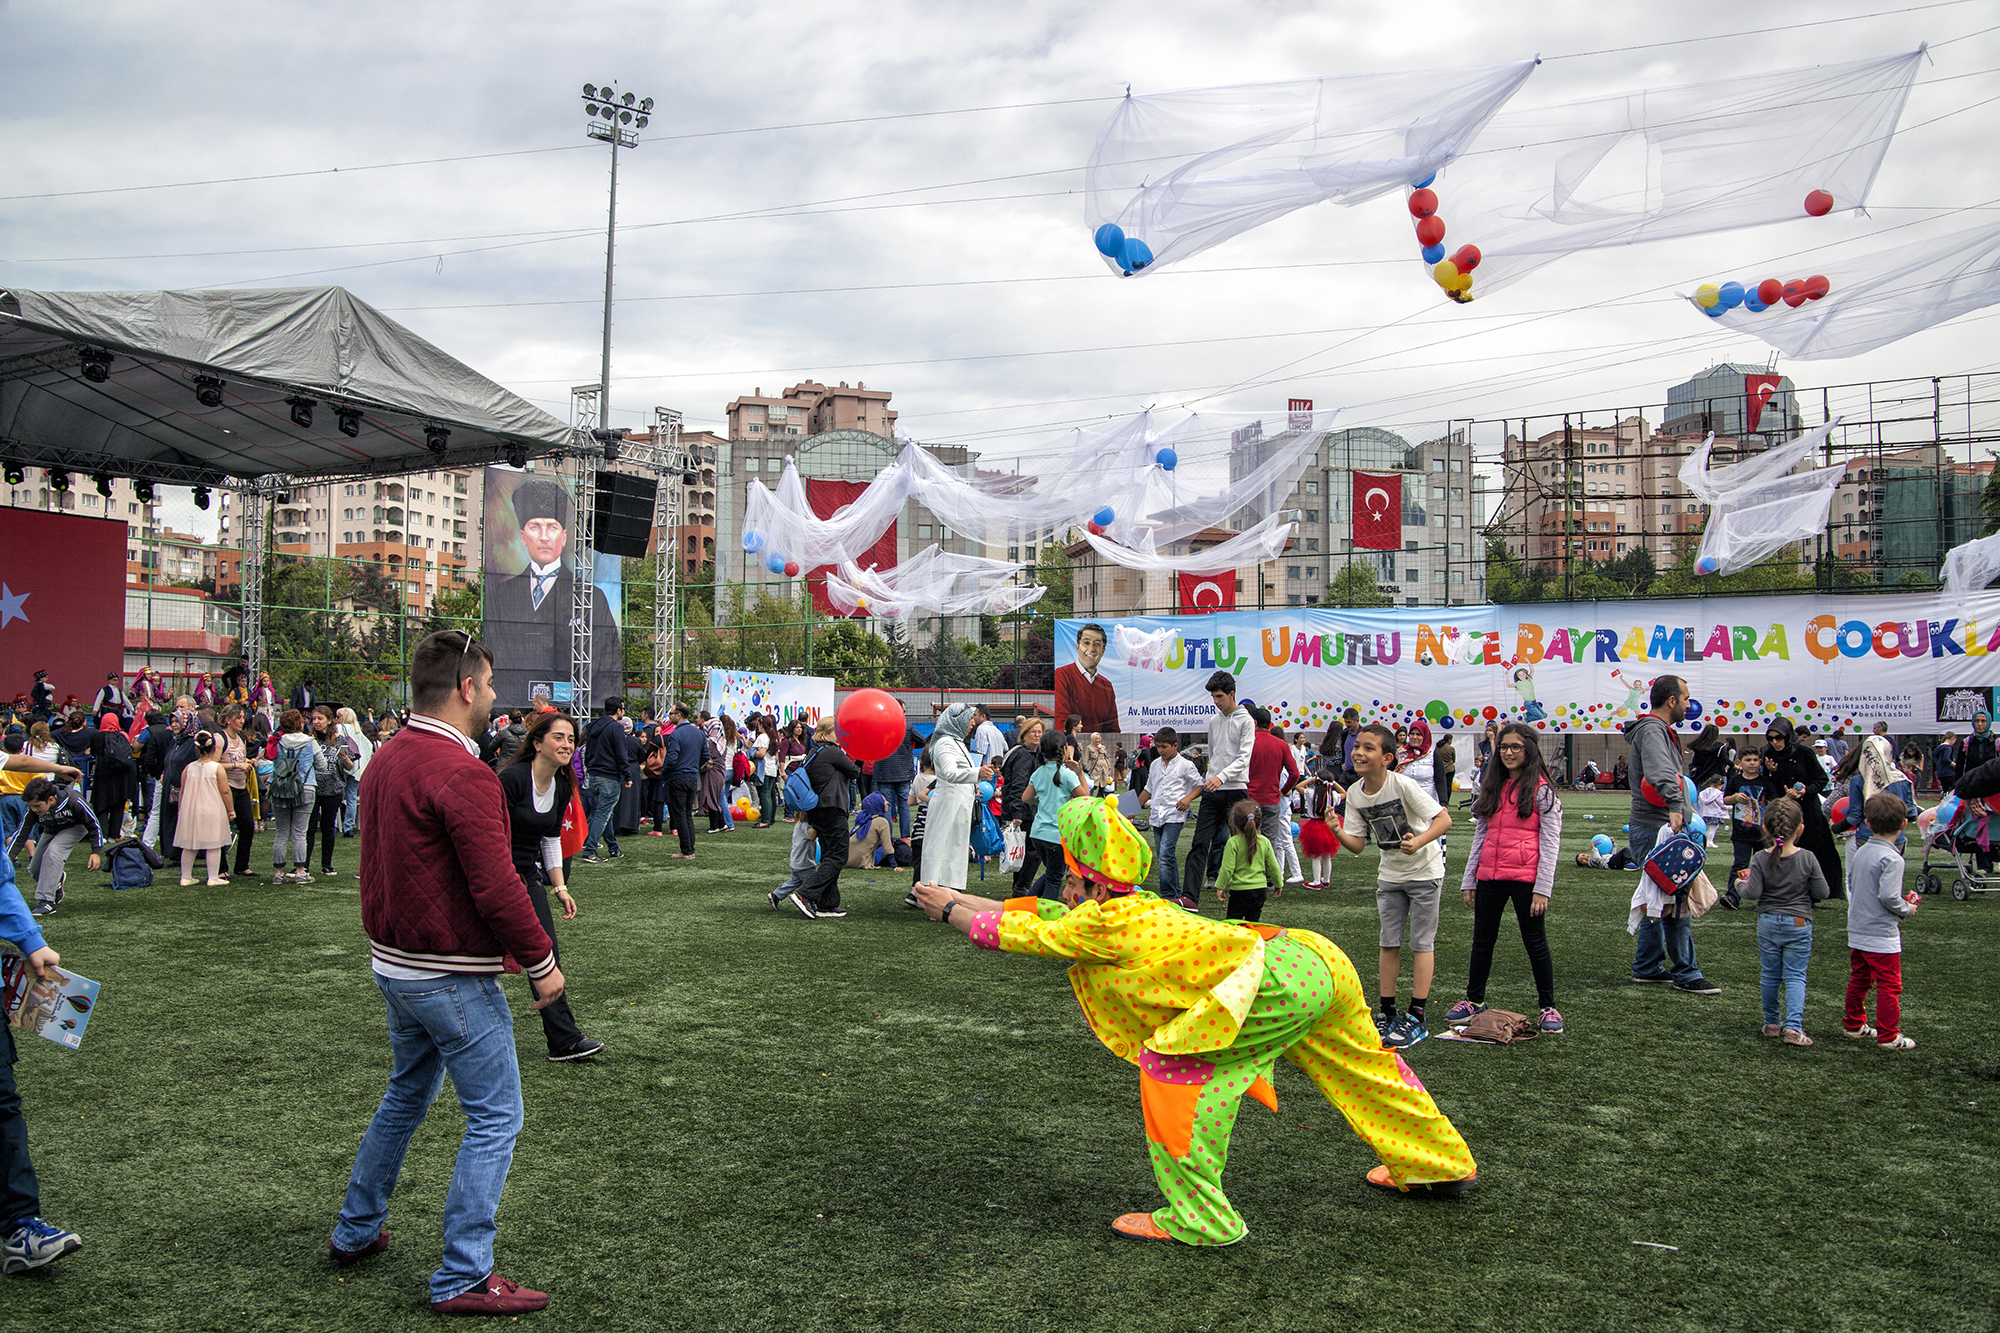 #114 —Akatlar - 